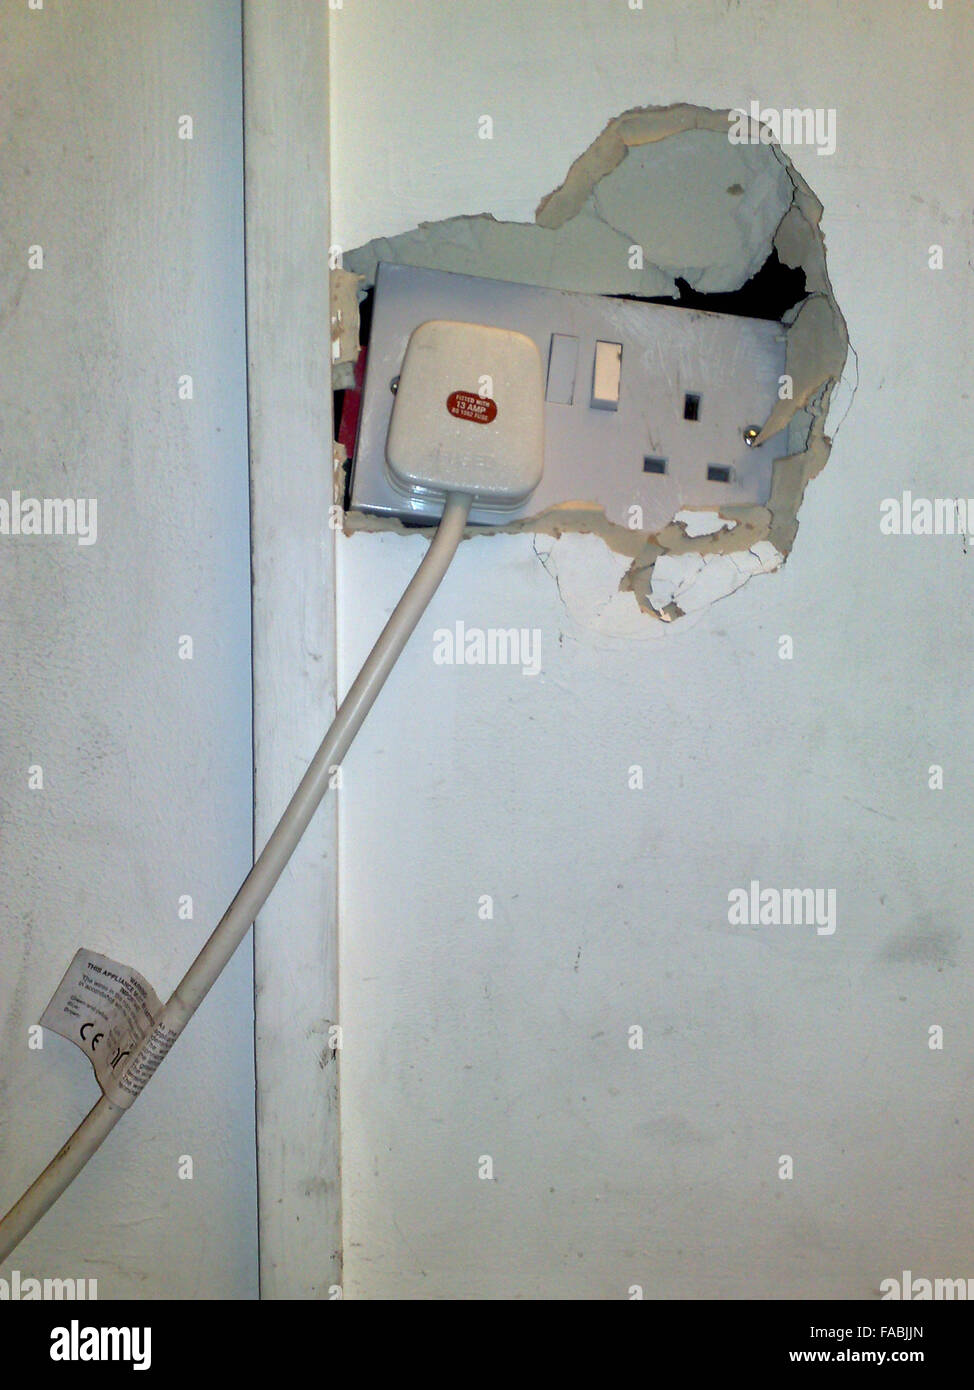 Kicked in electric wall socket - Stock Image